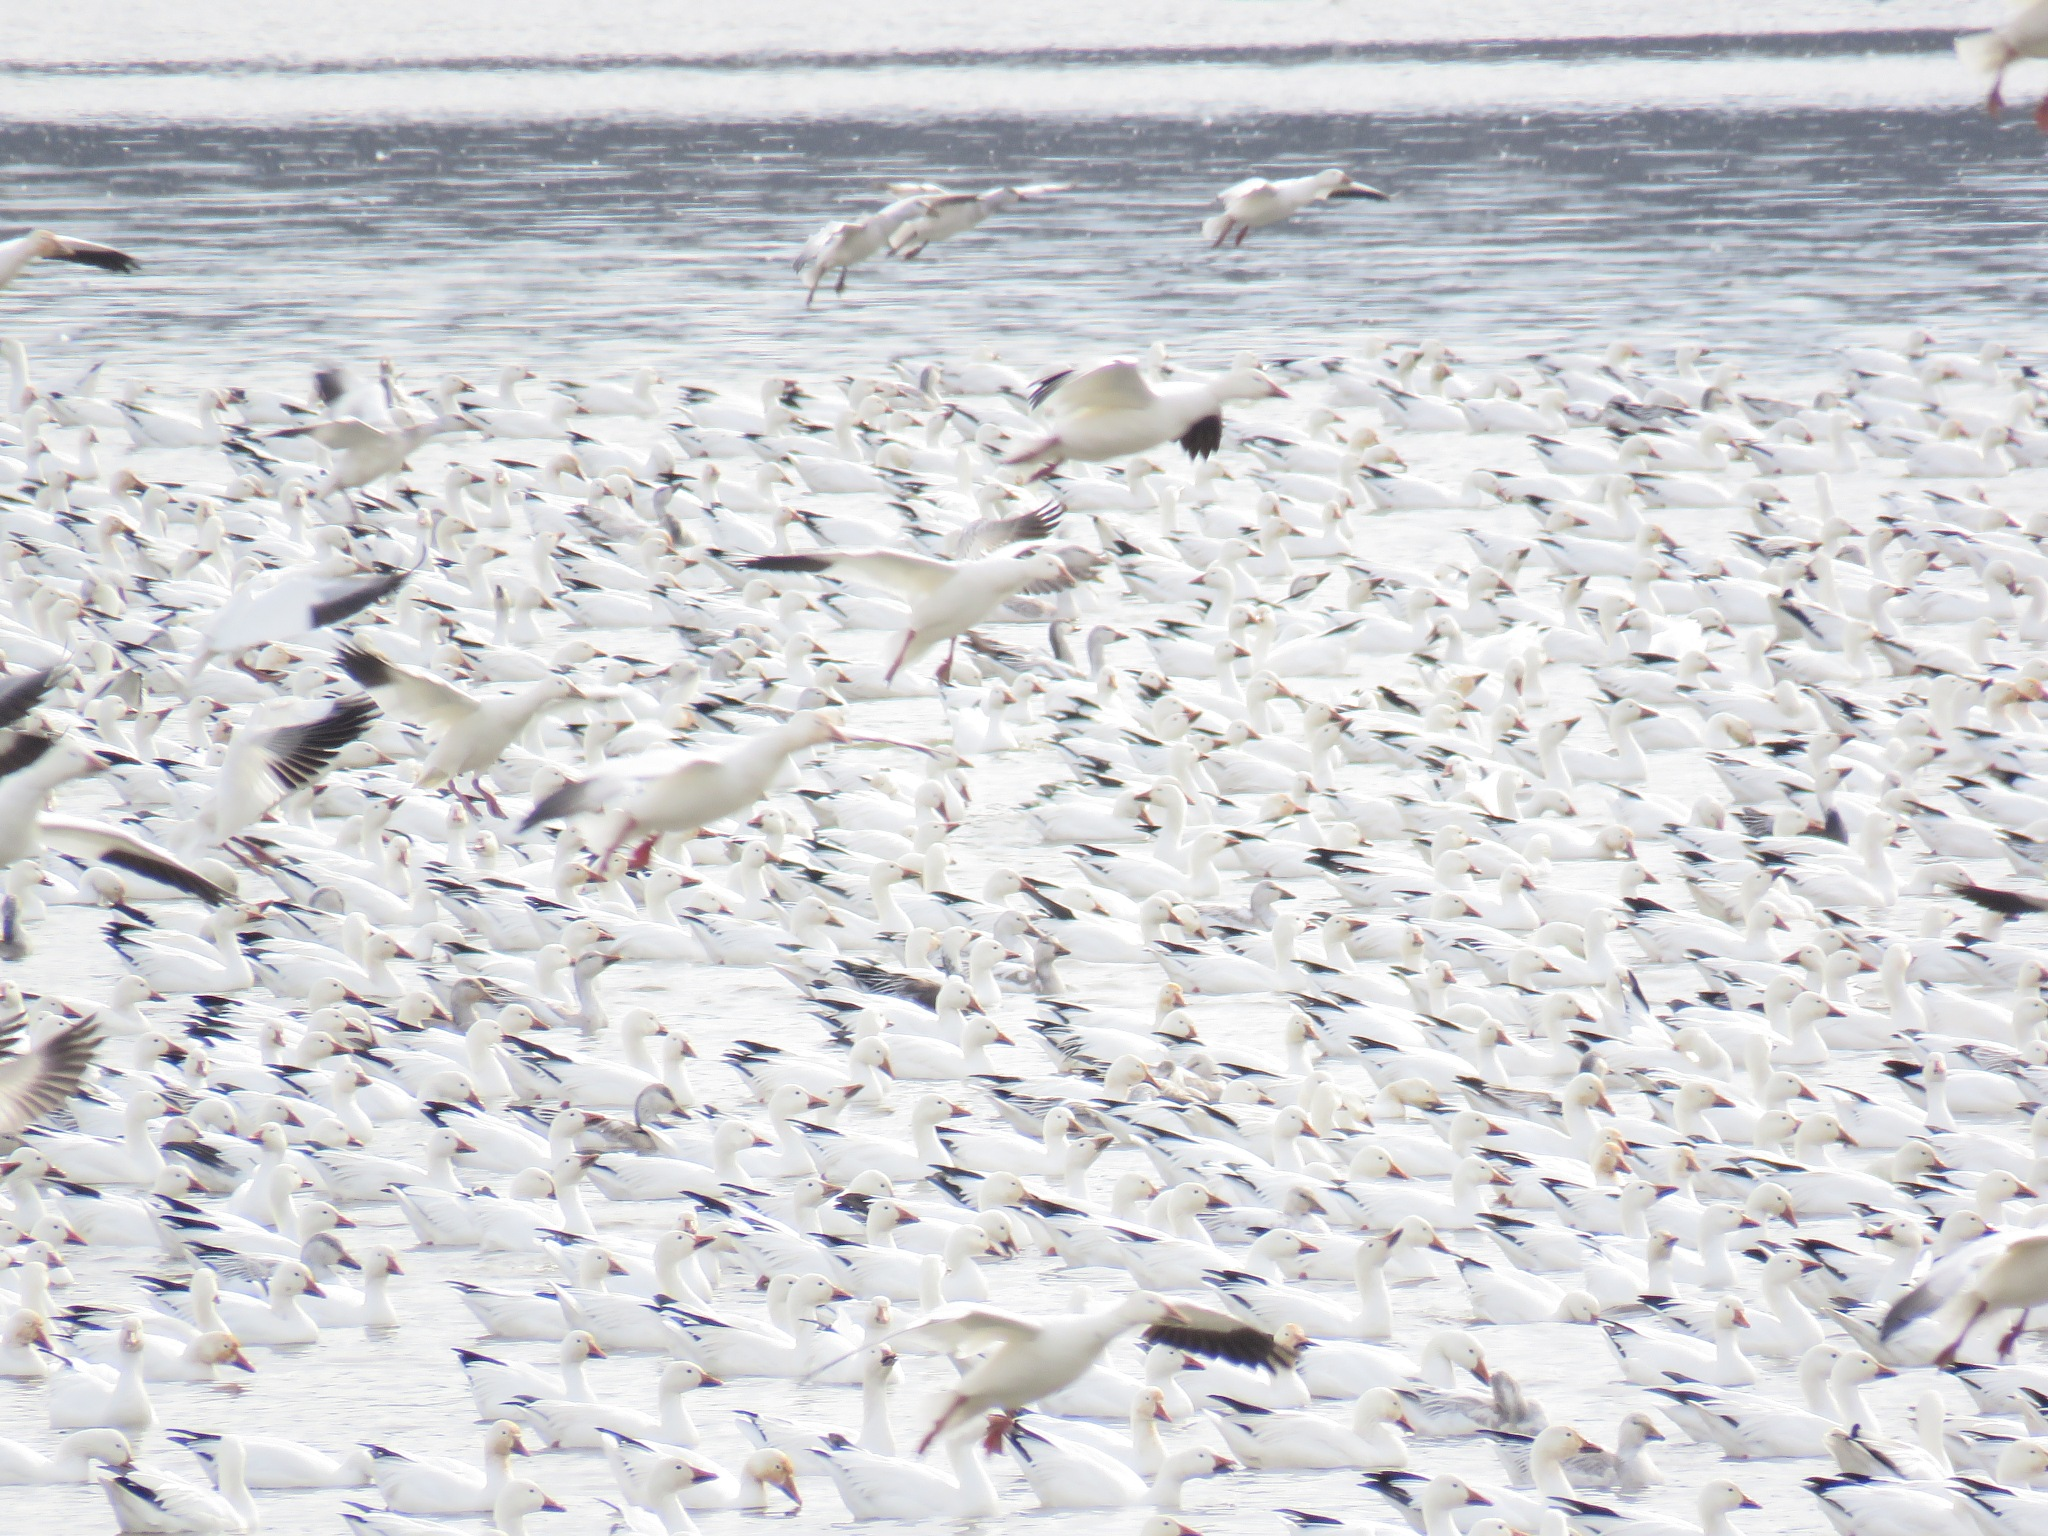 Snow Geese in Flight by janet.fisher.503